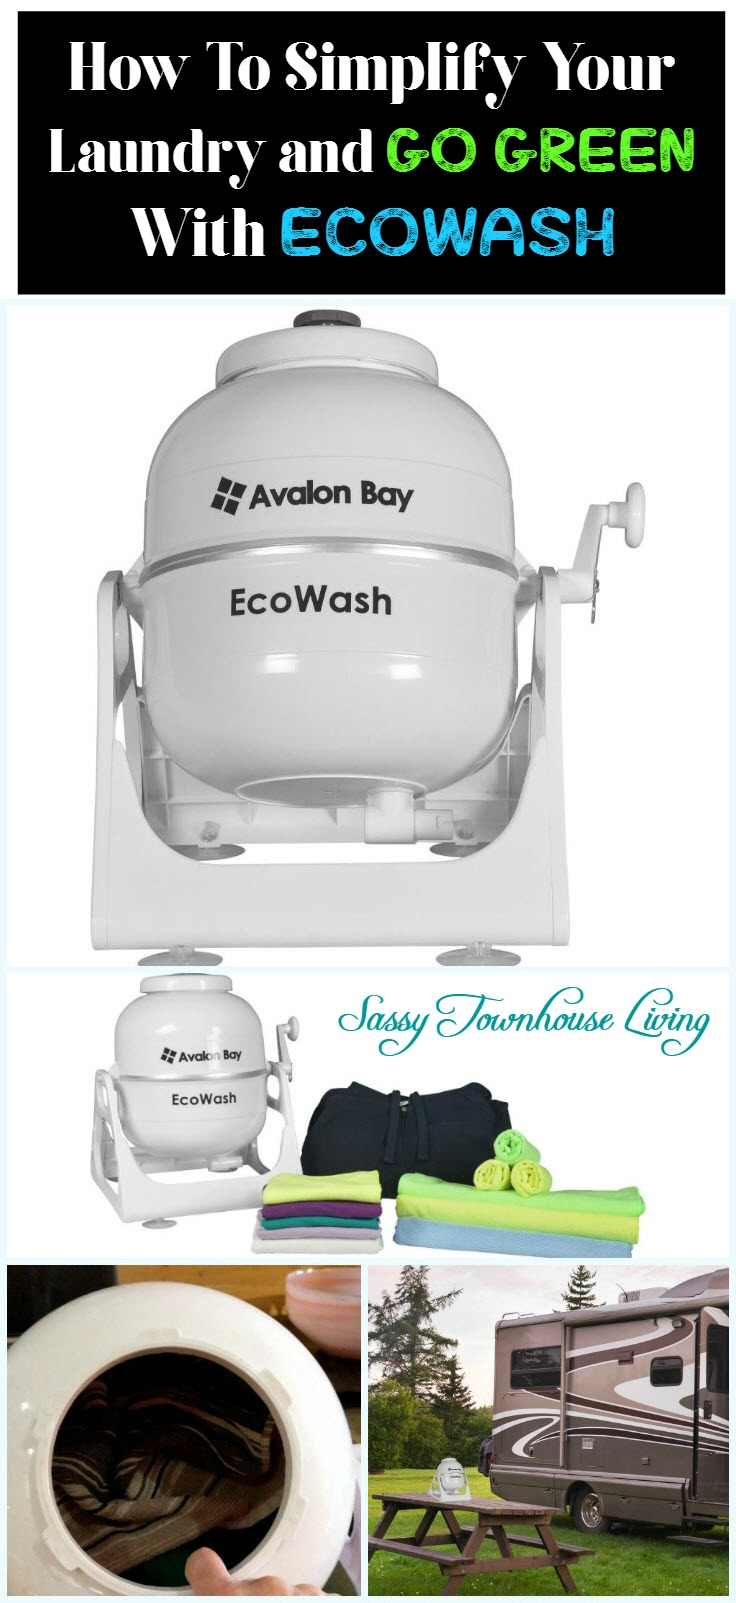 How To Simplify Your Laundry and Go Green With EcoWash - Sassy Townhouse Living